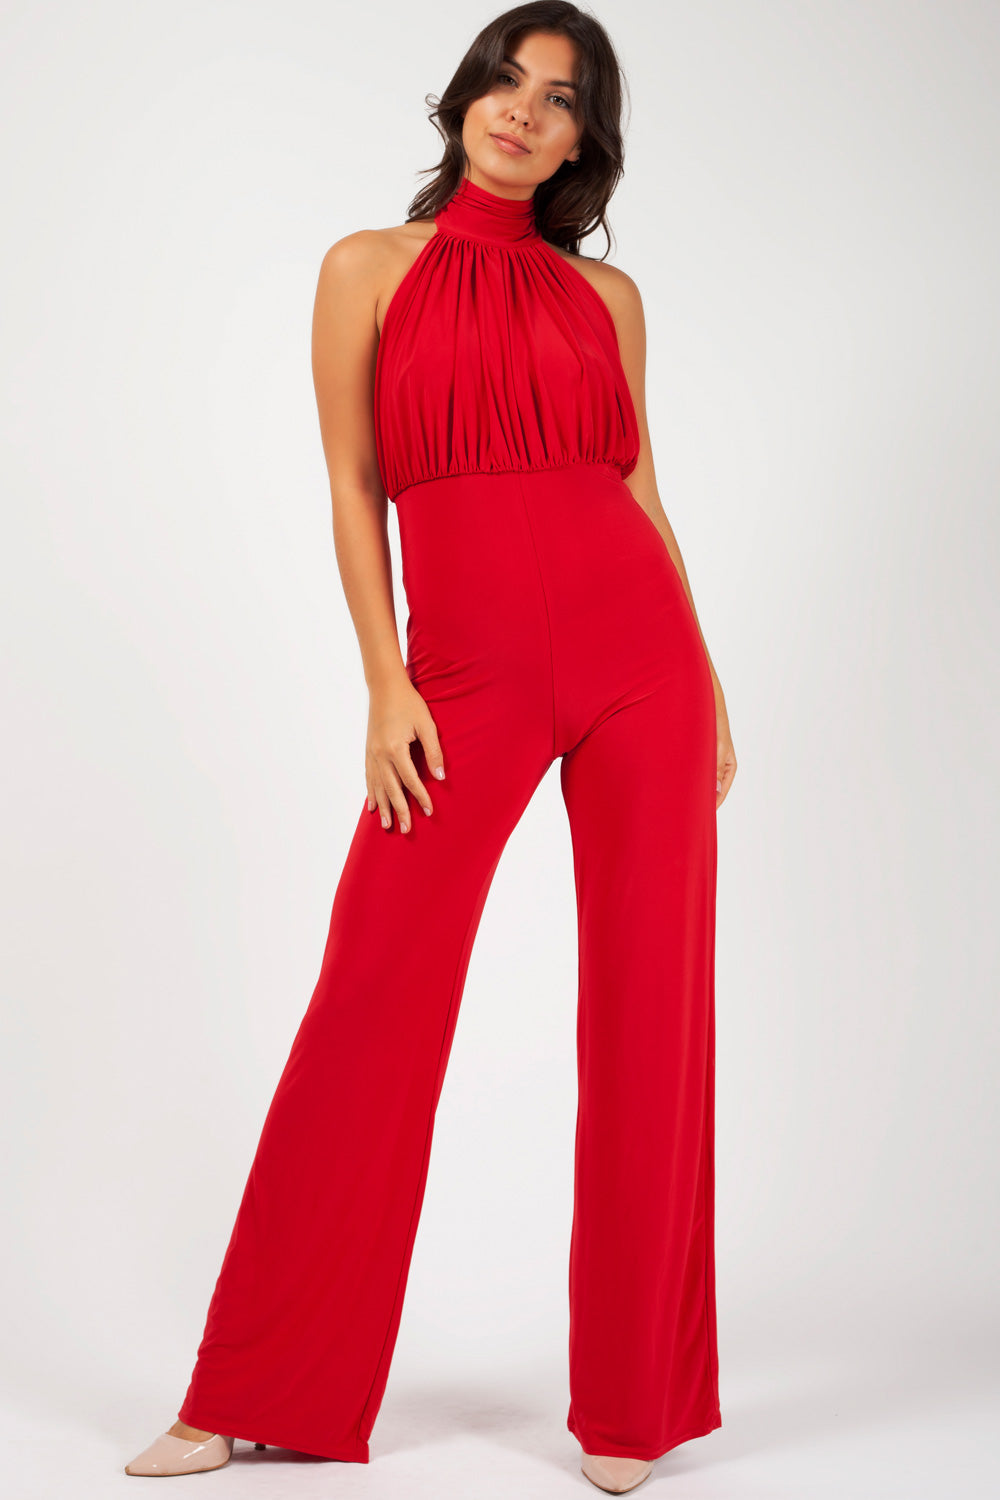 red party jumpsuit